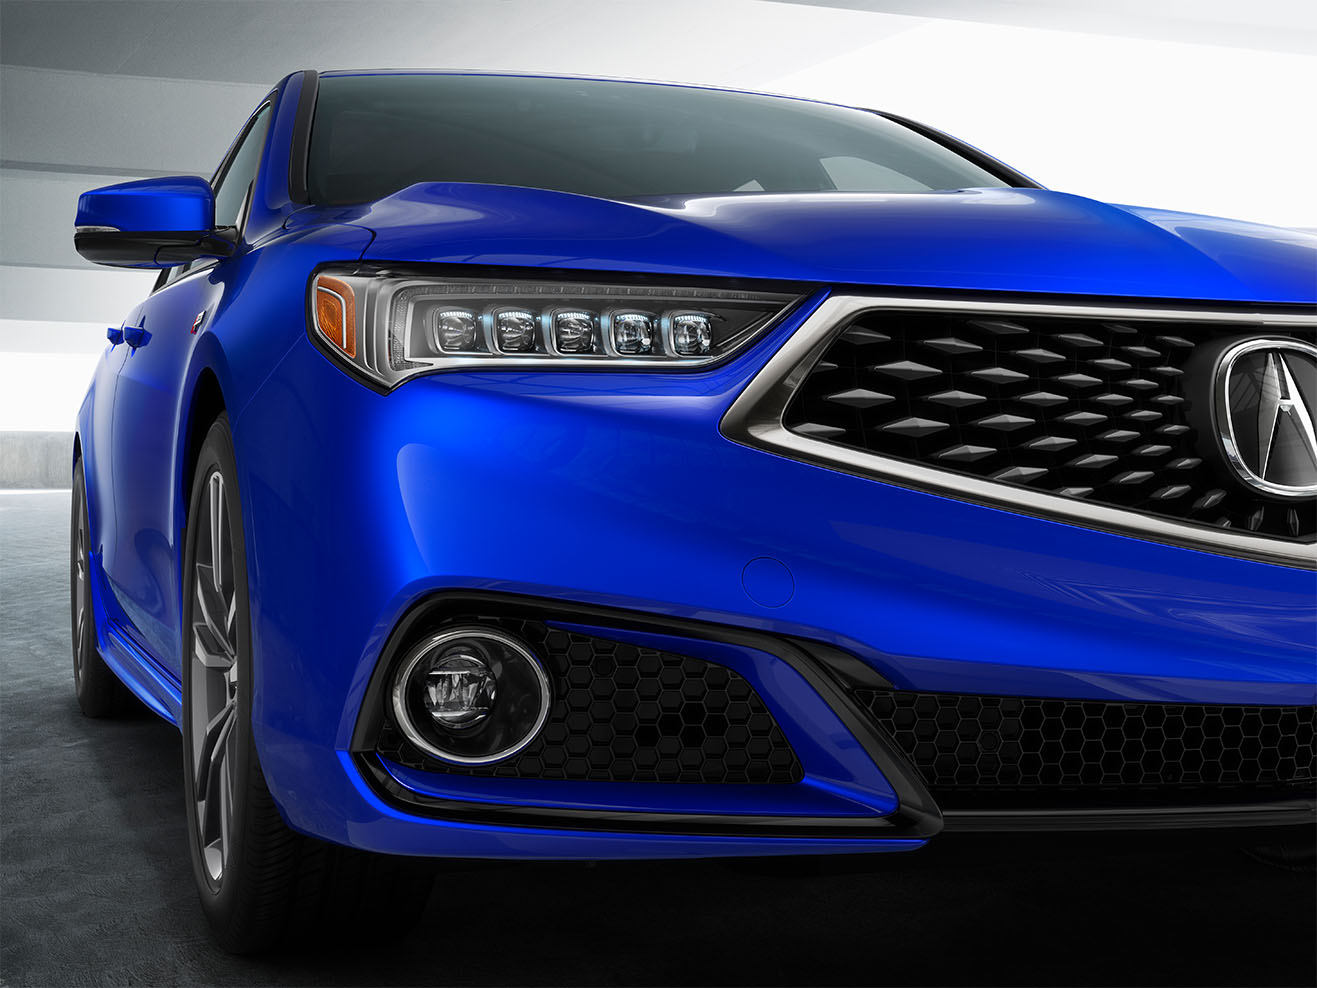 Blue Acura TLX Front Passenger side headlight view